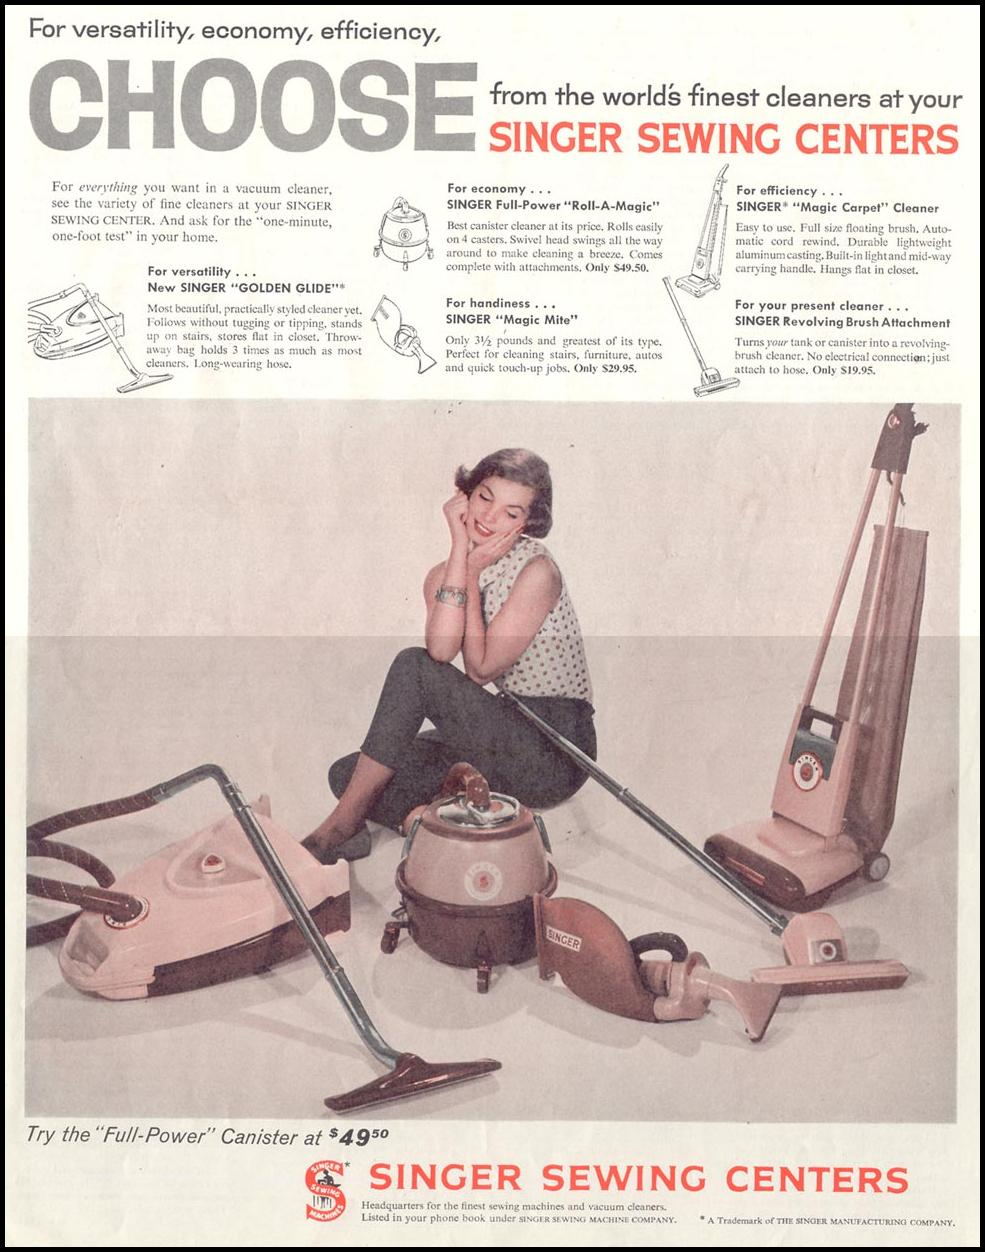 SINGER HOME APPLIANCES SATURDAY EVENING POST 05/02/1959 p. 101